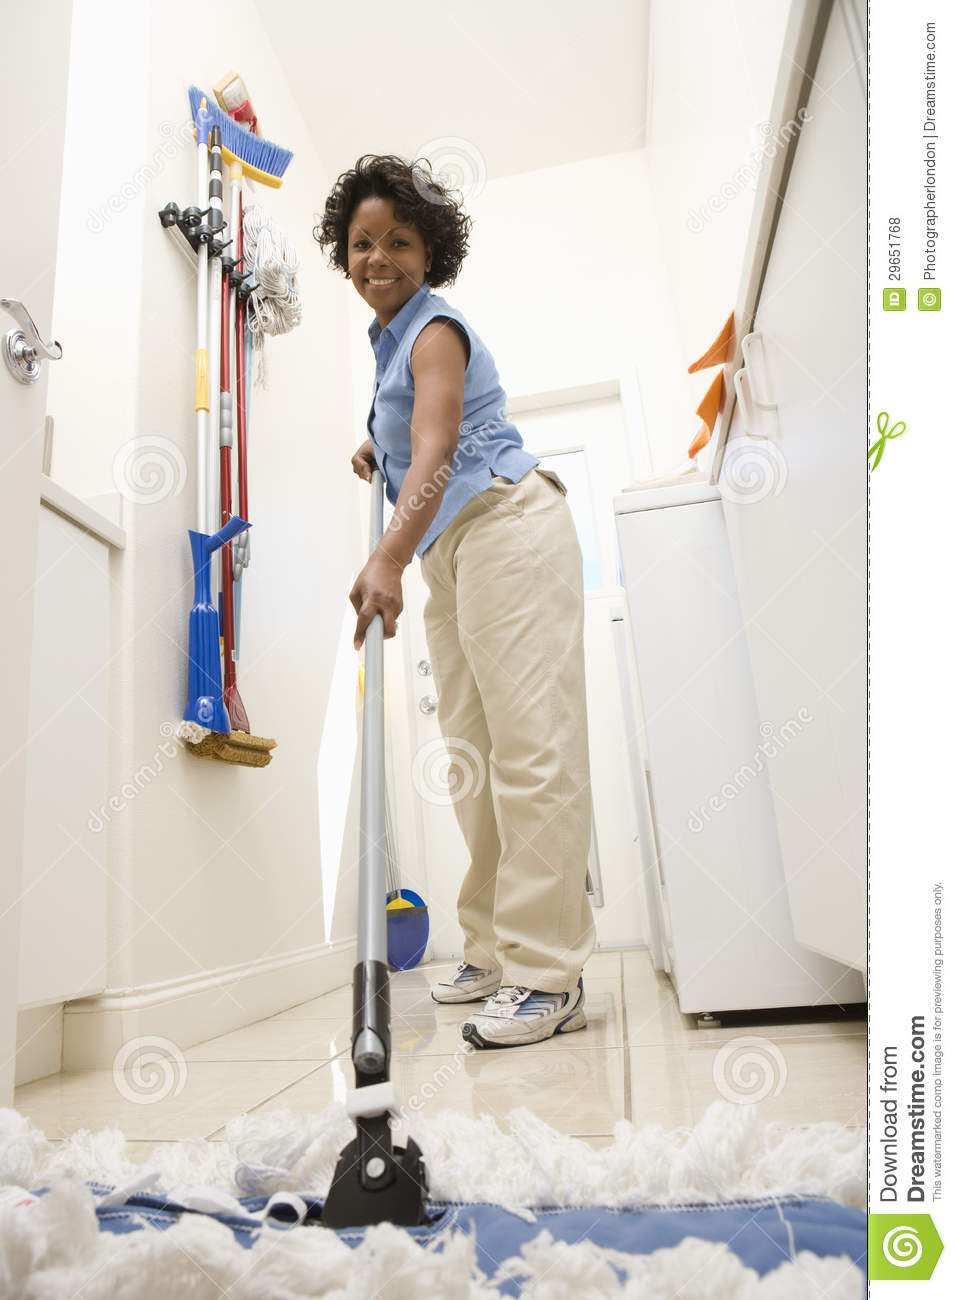 Mopping Kitchen Floor Woman Mopping The Floor Royalty Free Stock Photos Image 29651768